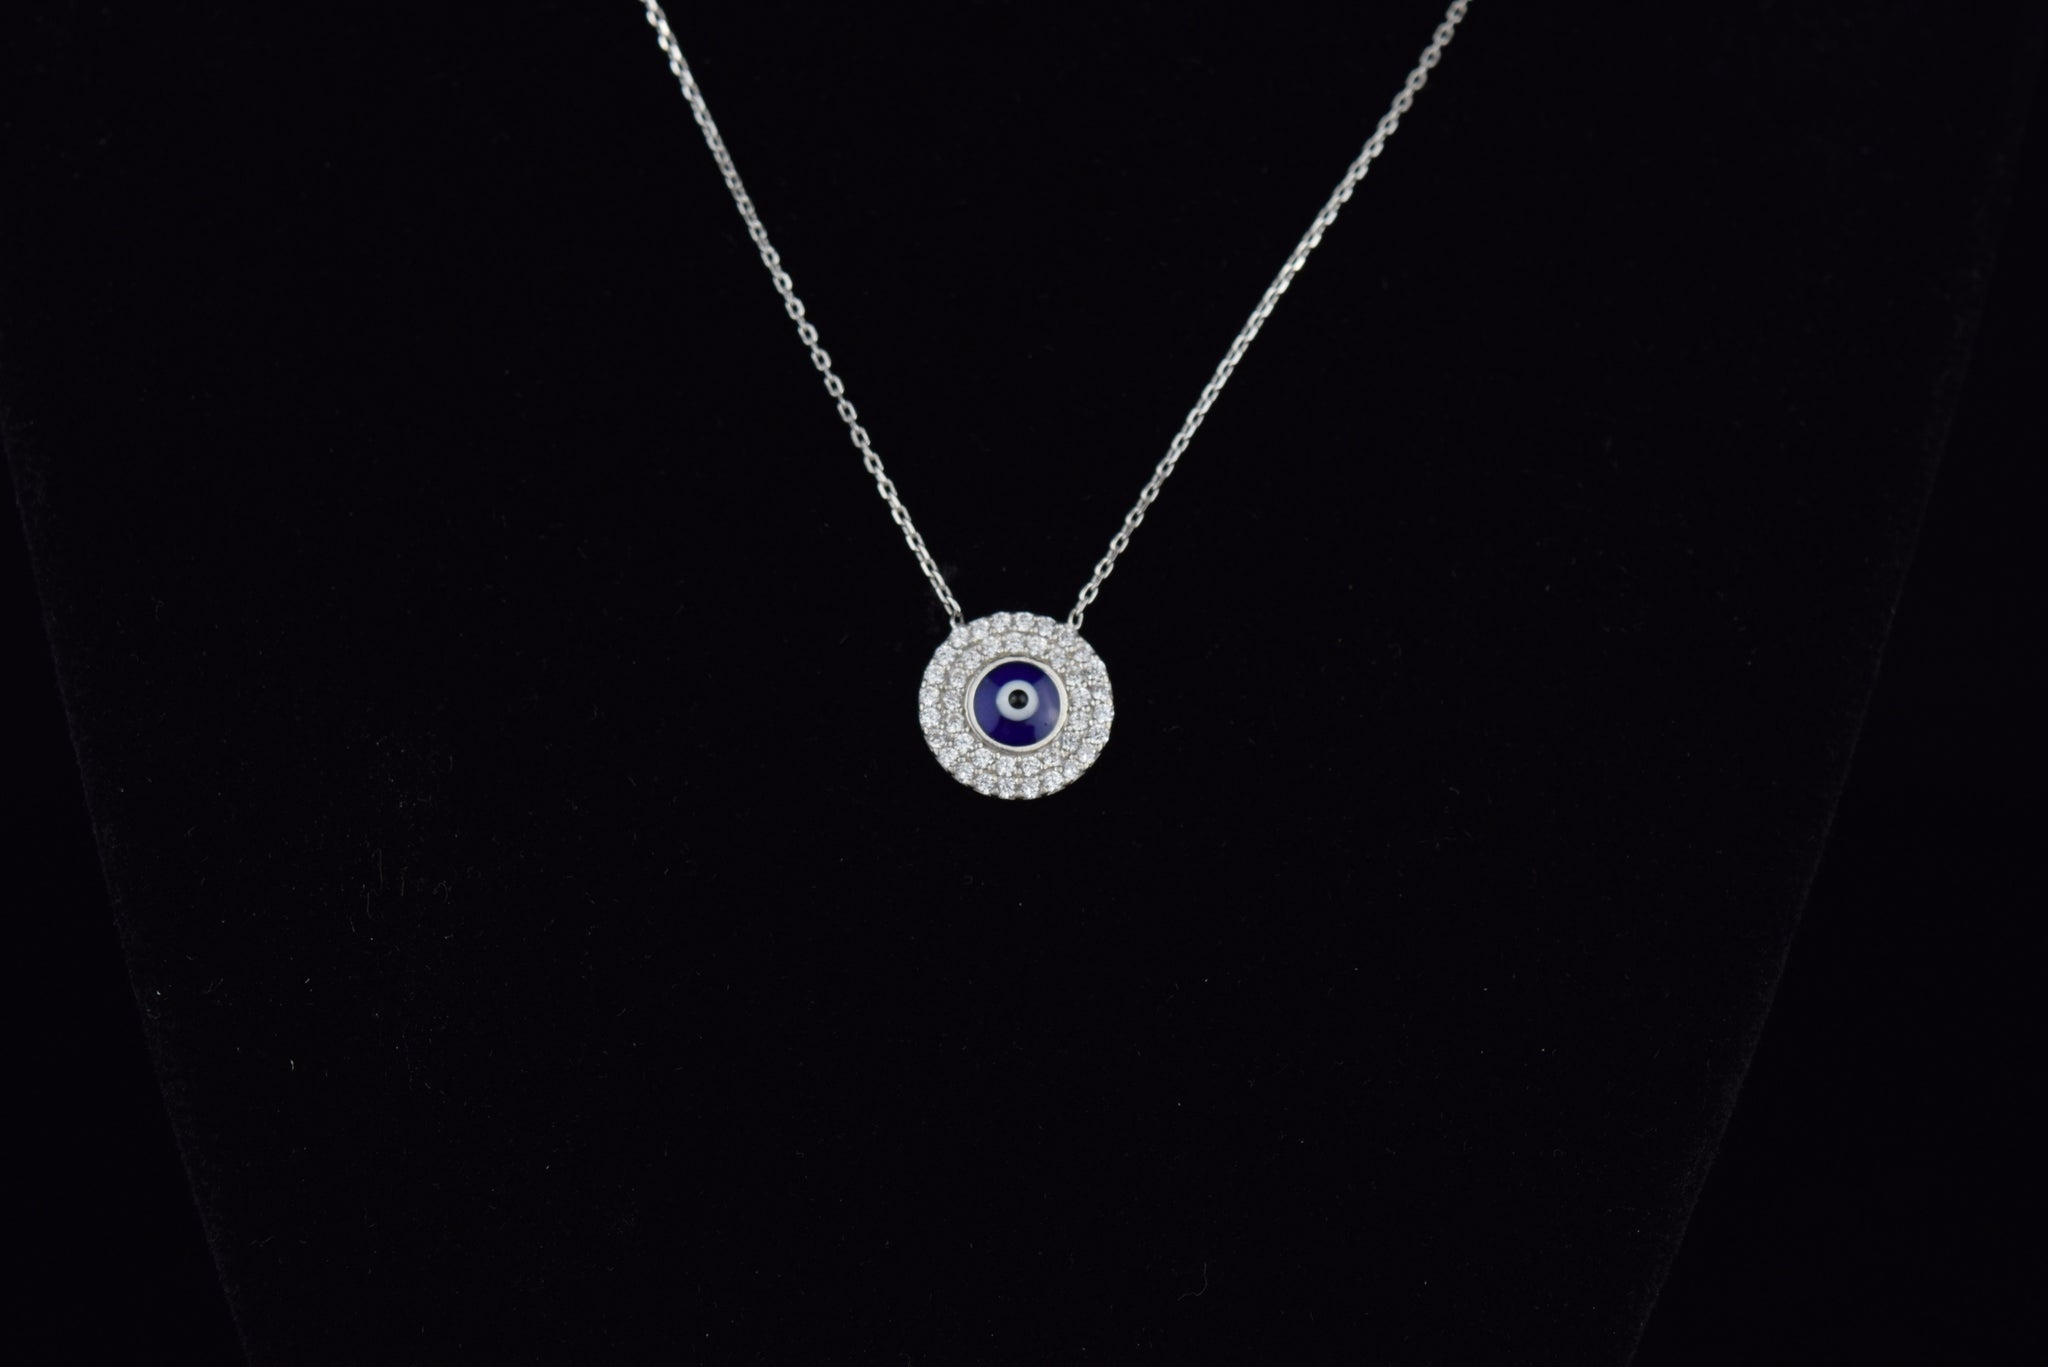 'GLAM EYE' NECKLACE - SHOP PAIGE